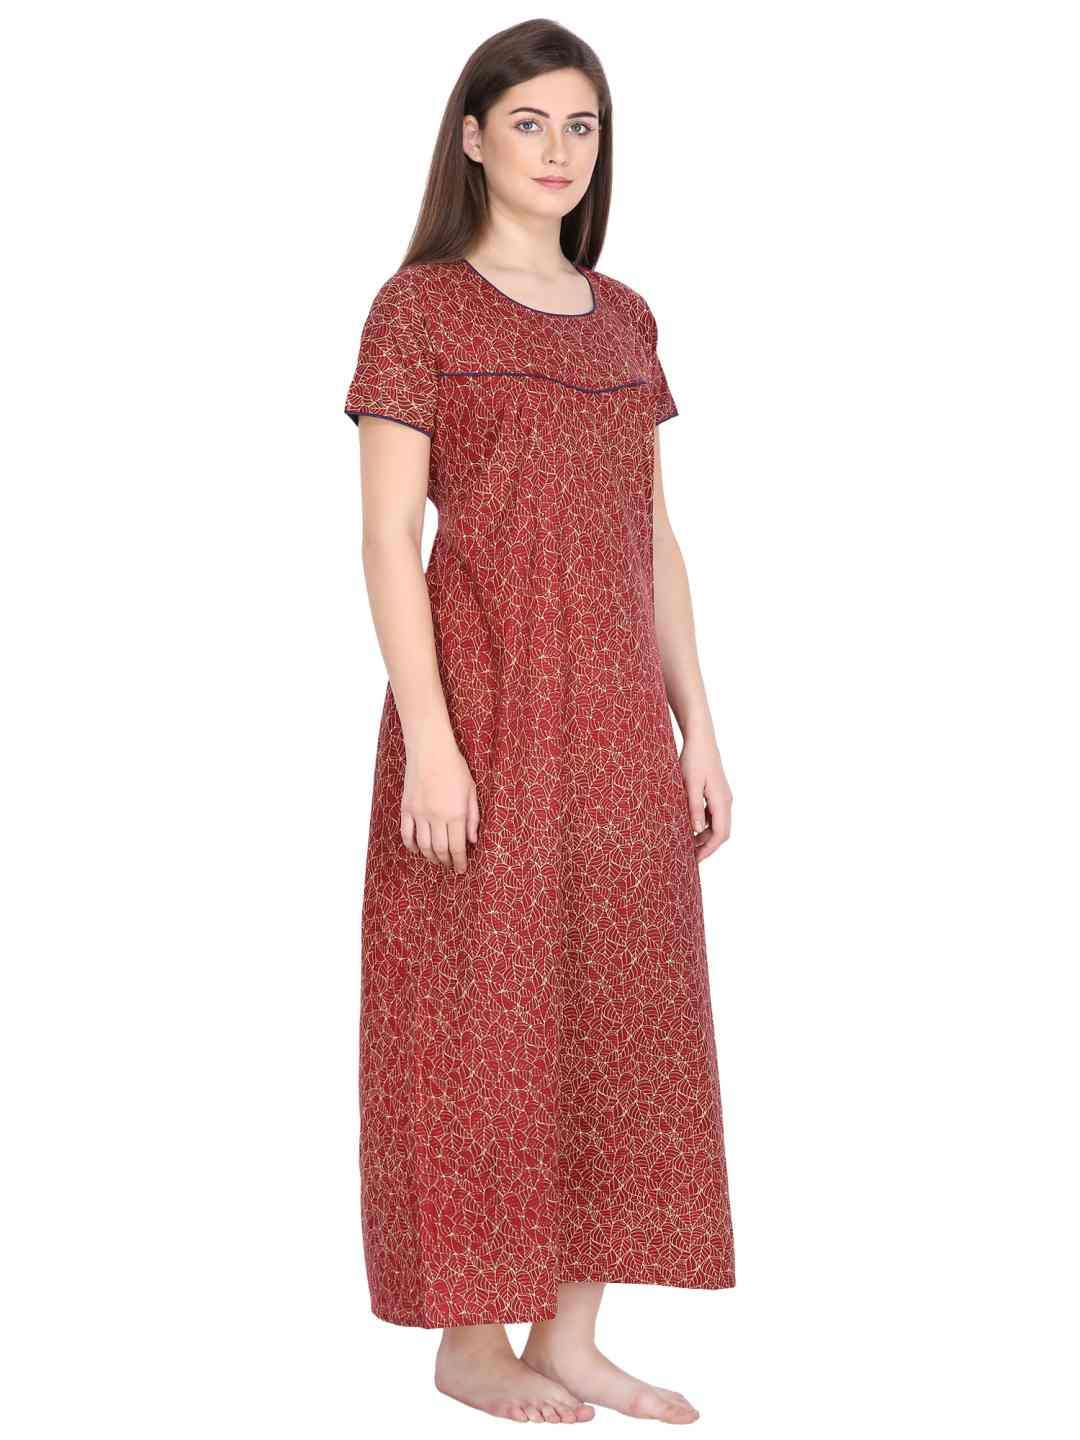 Klamotten_long nightdress_C2M191